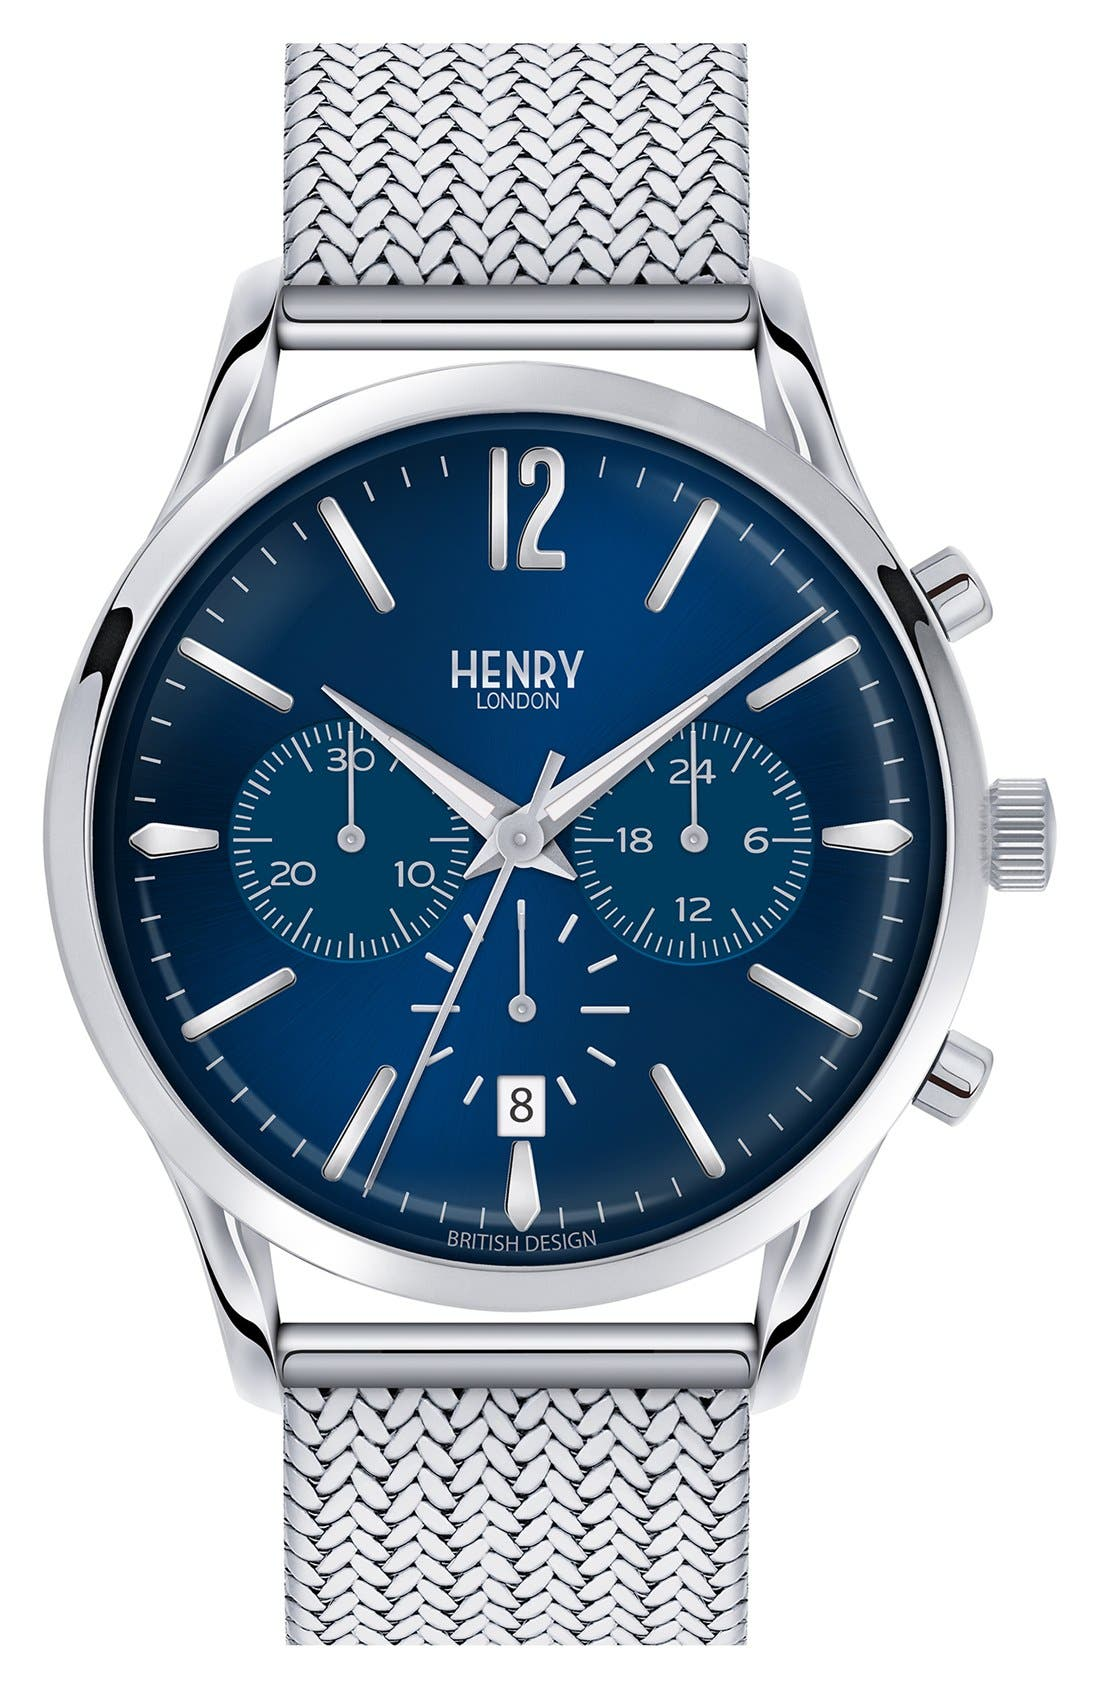 Henry London 'Knightsbridge' Chronograph Mesh Strap Watch, 38mm